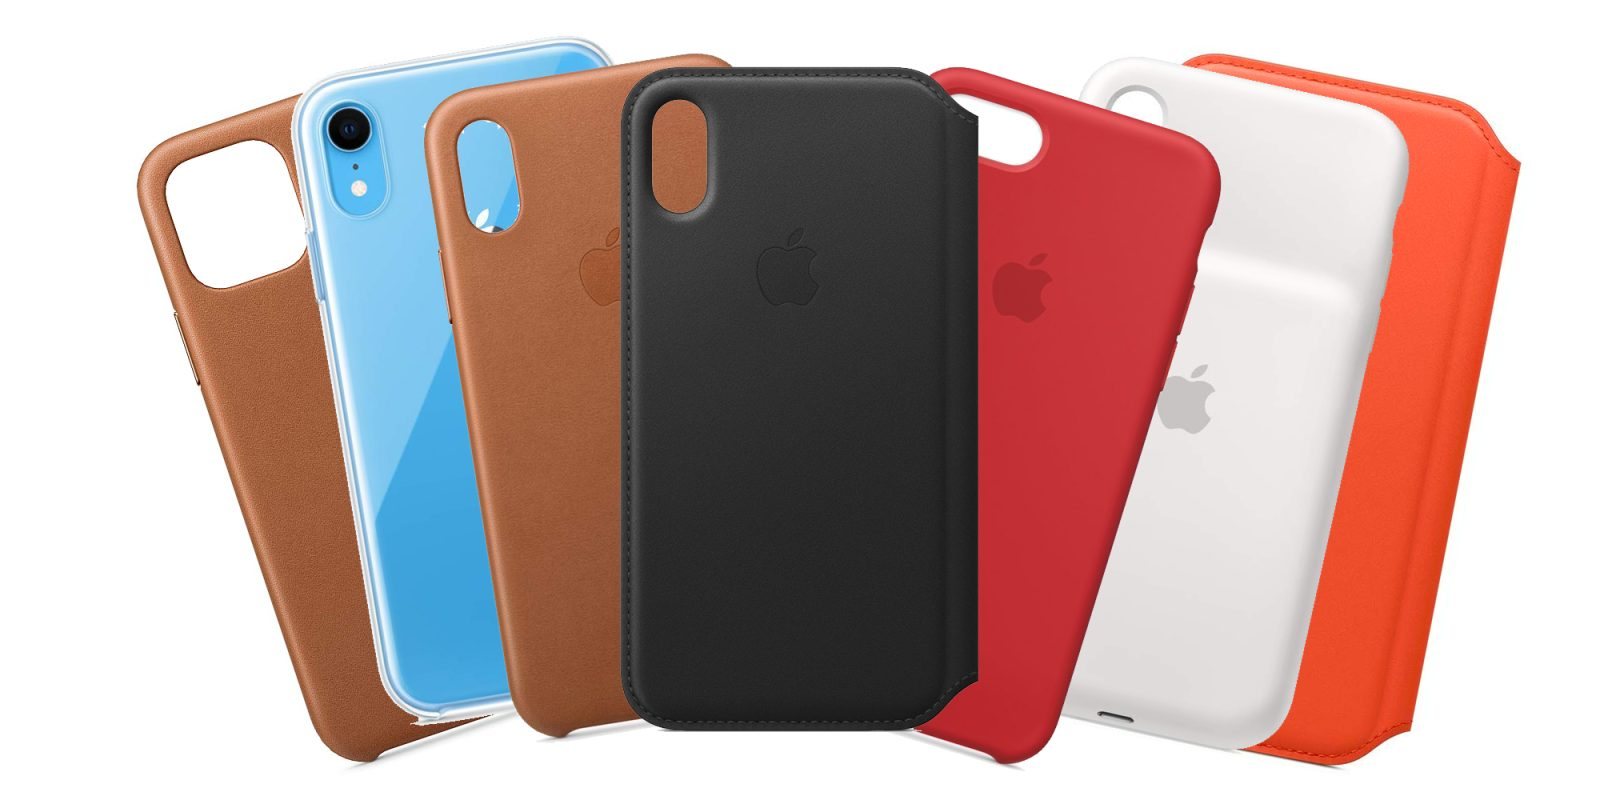 Nearly all of Apple's official iPhone cases are on sale at Amazon from $26